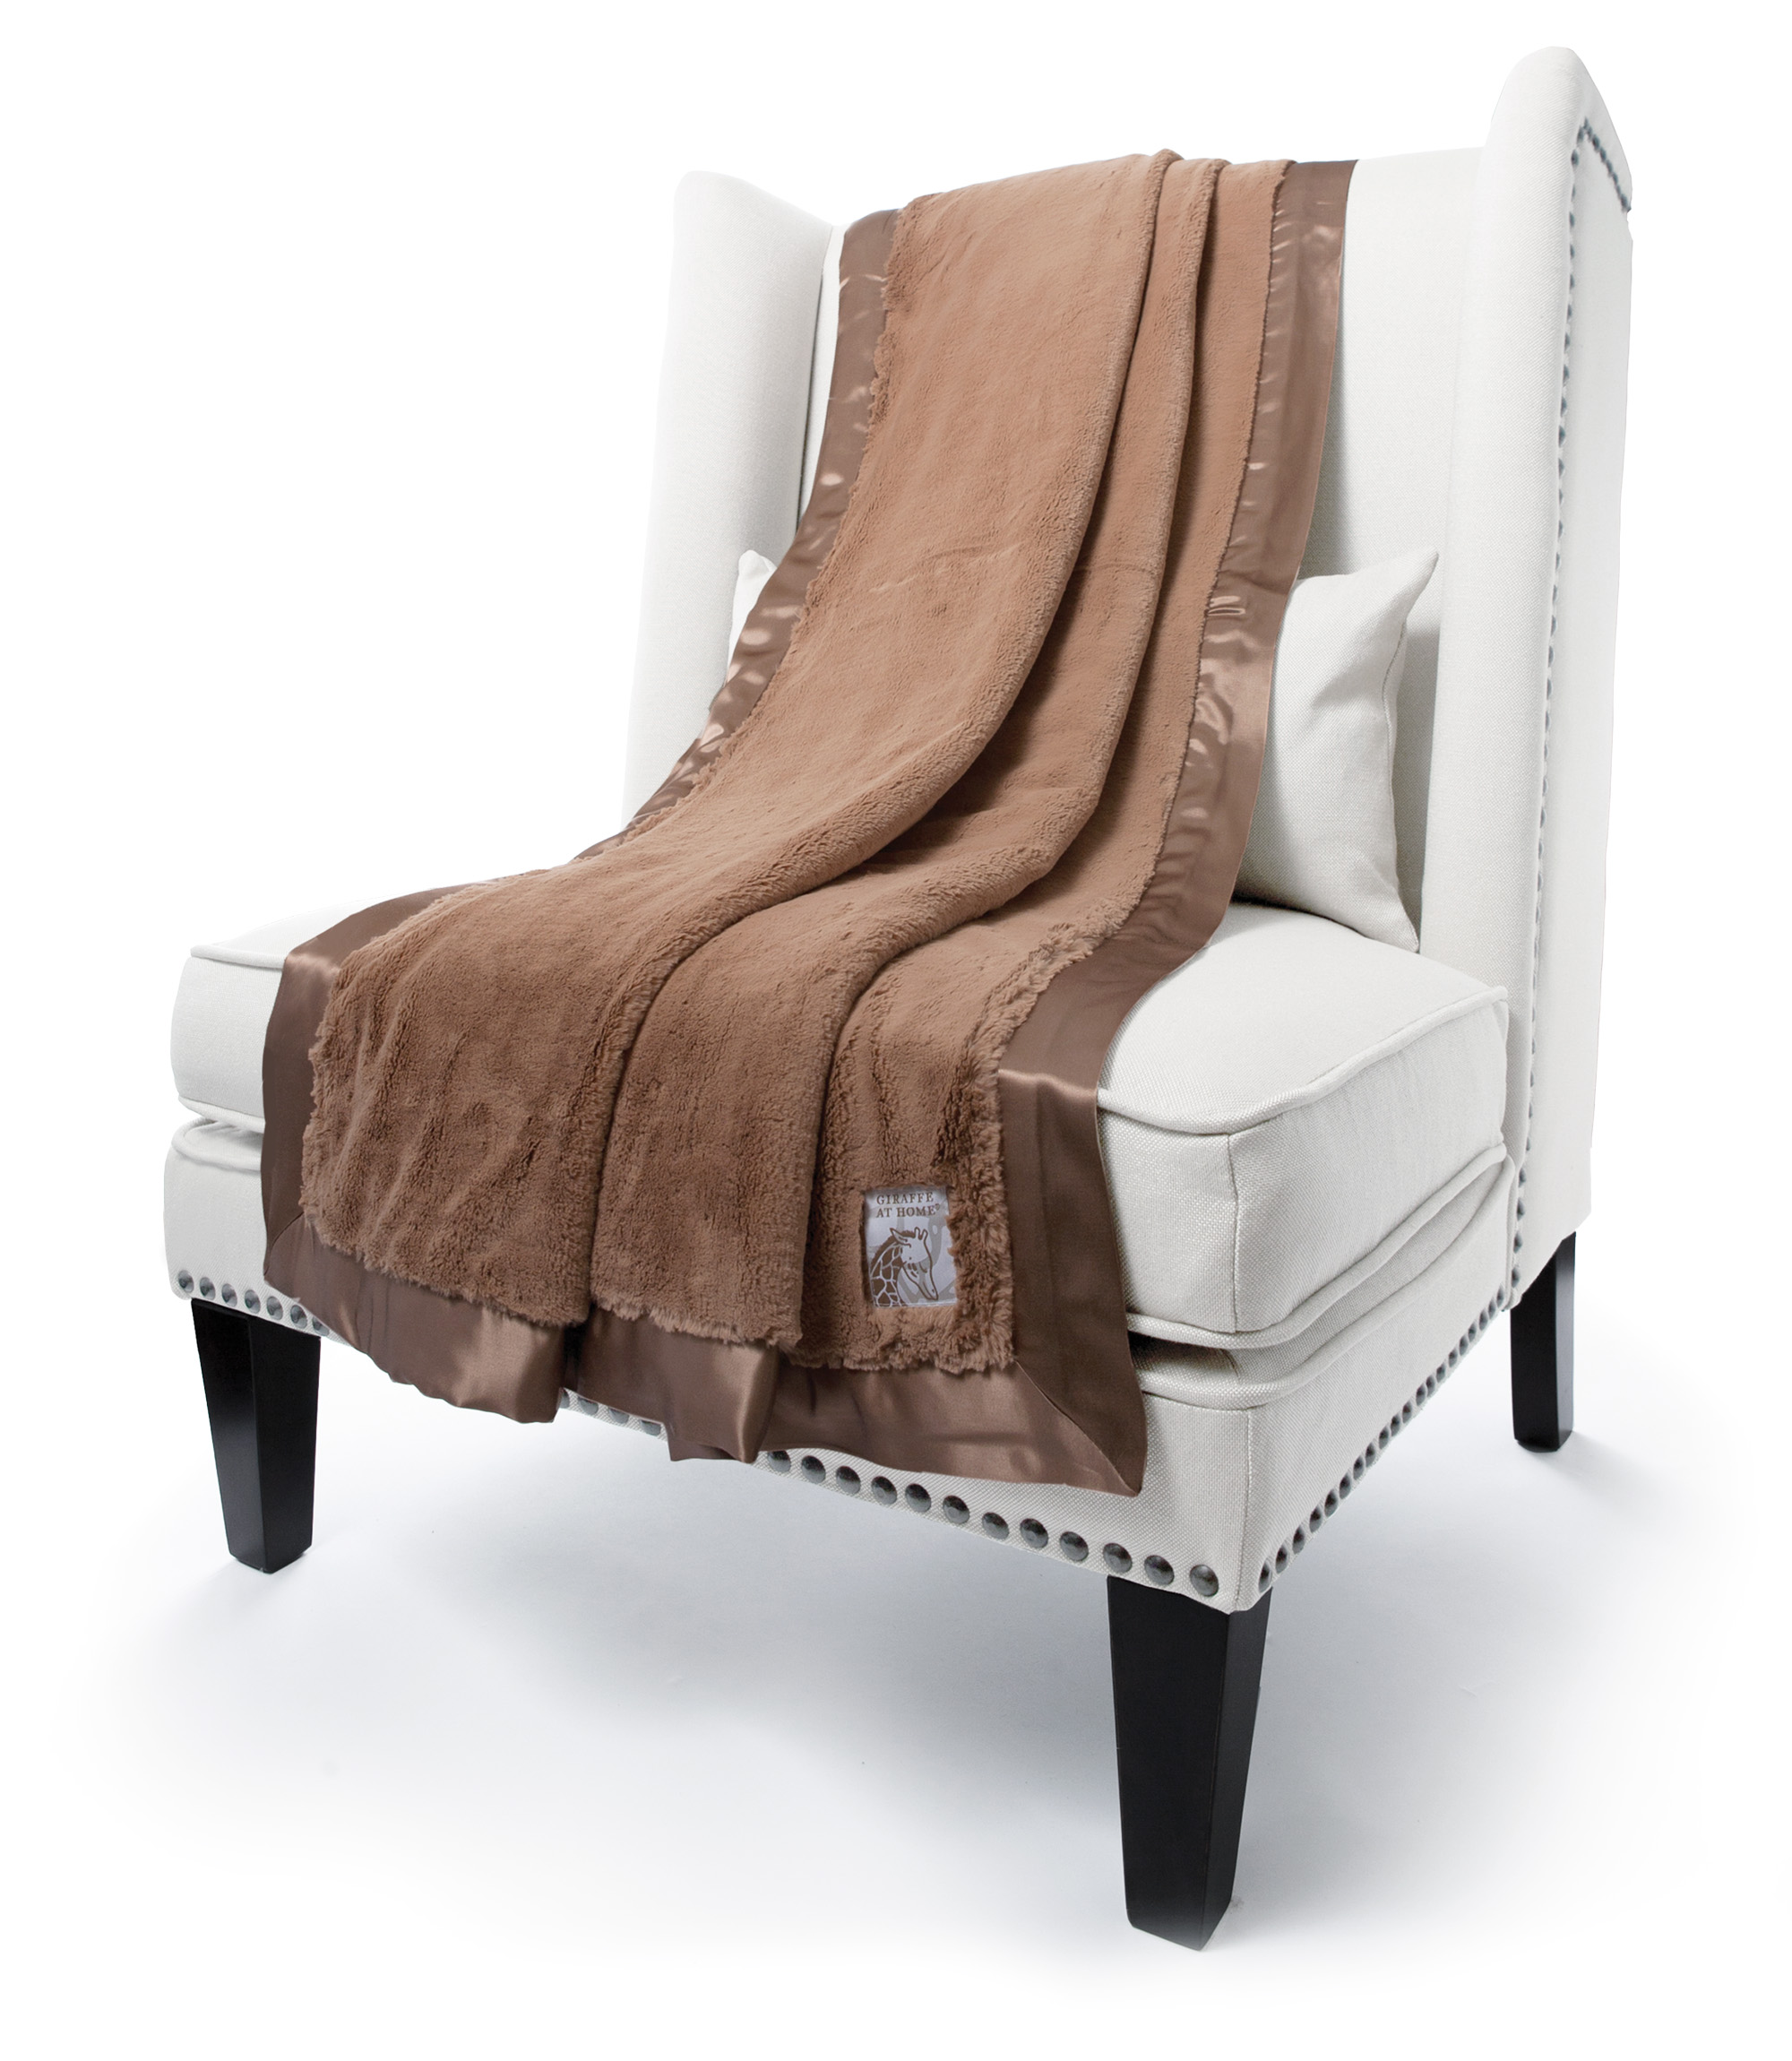 Luxe Throw Luxurious Throws and Plush Throw Blankets